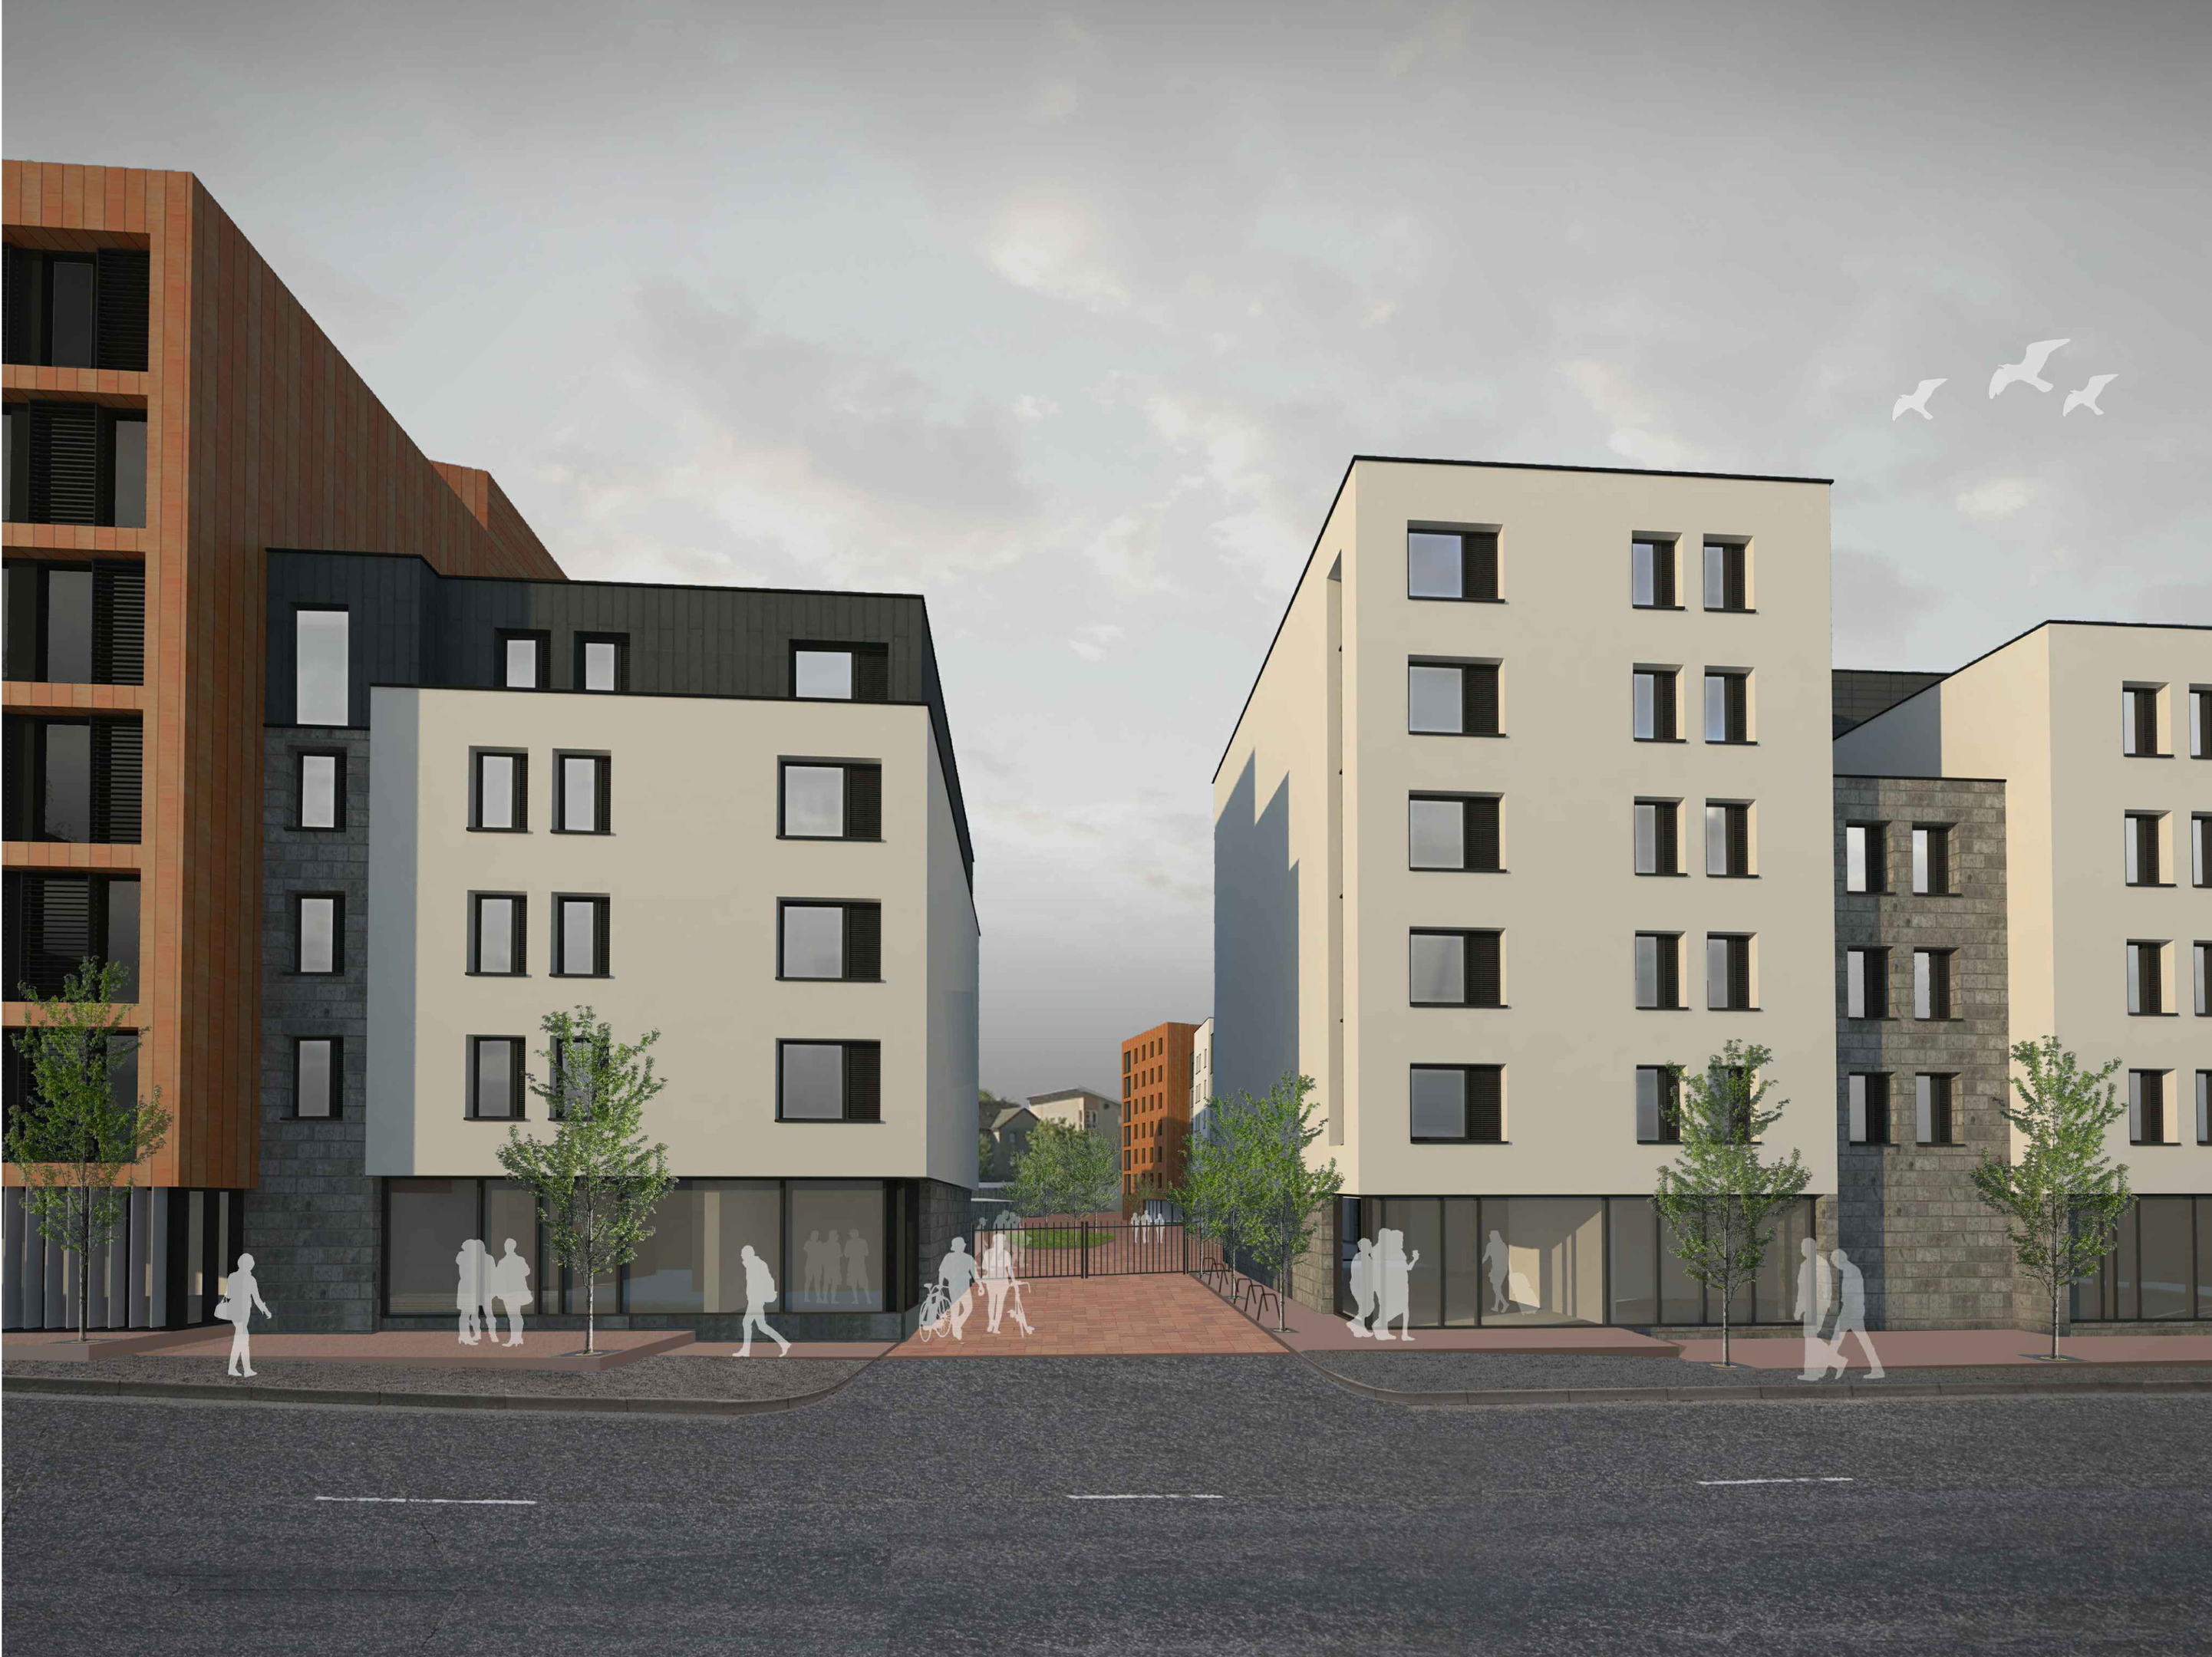 An artist's impression of how the planned student accommodation  could look.